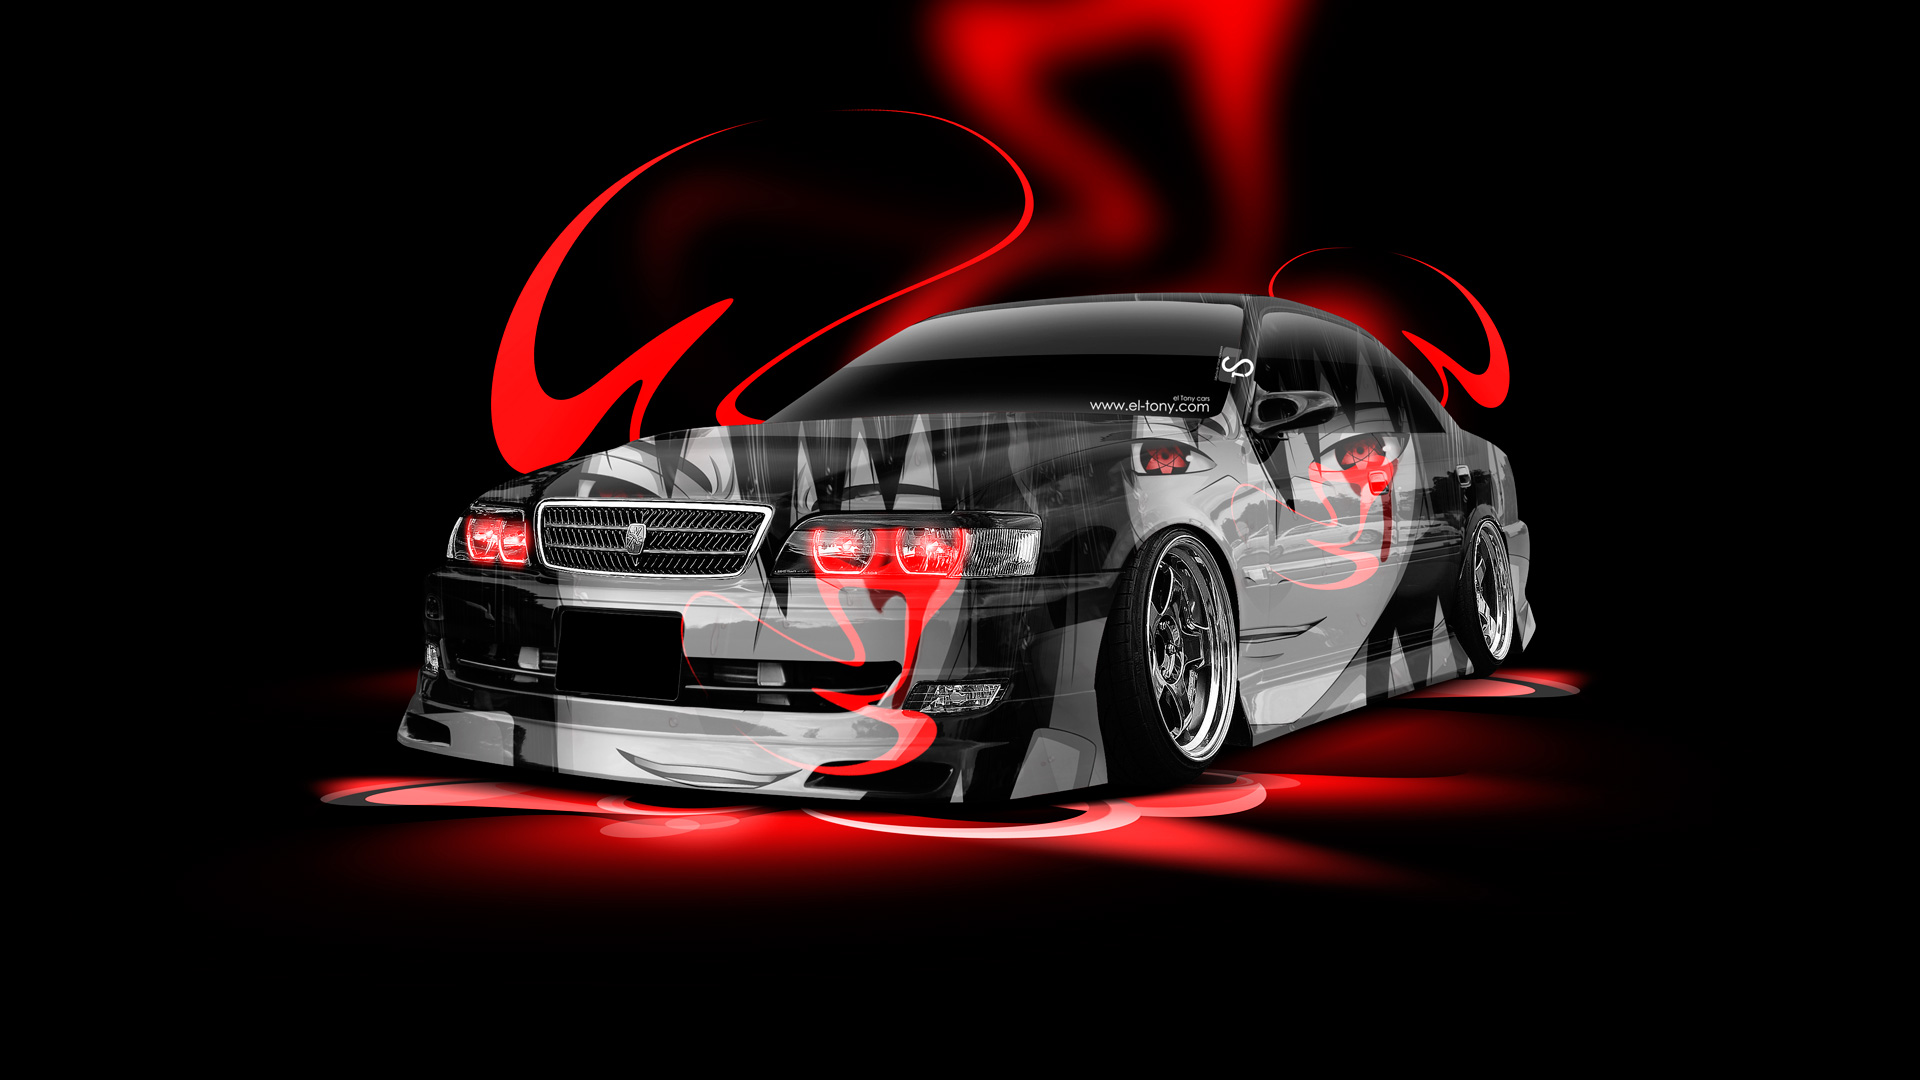 Monster Energy Cars Hd Wallpapers Toyota Chaser Jzx100 Anime Aerography Car 2014 El Tony